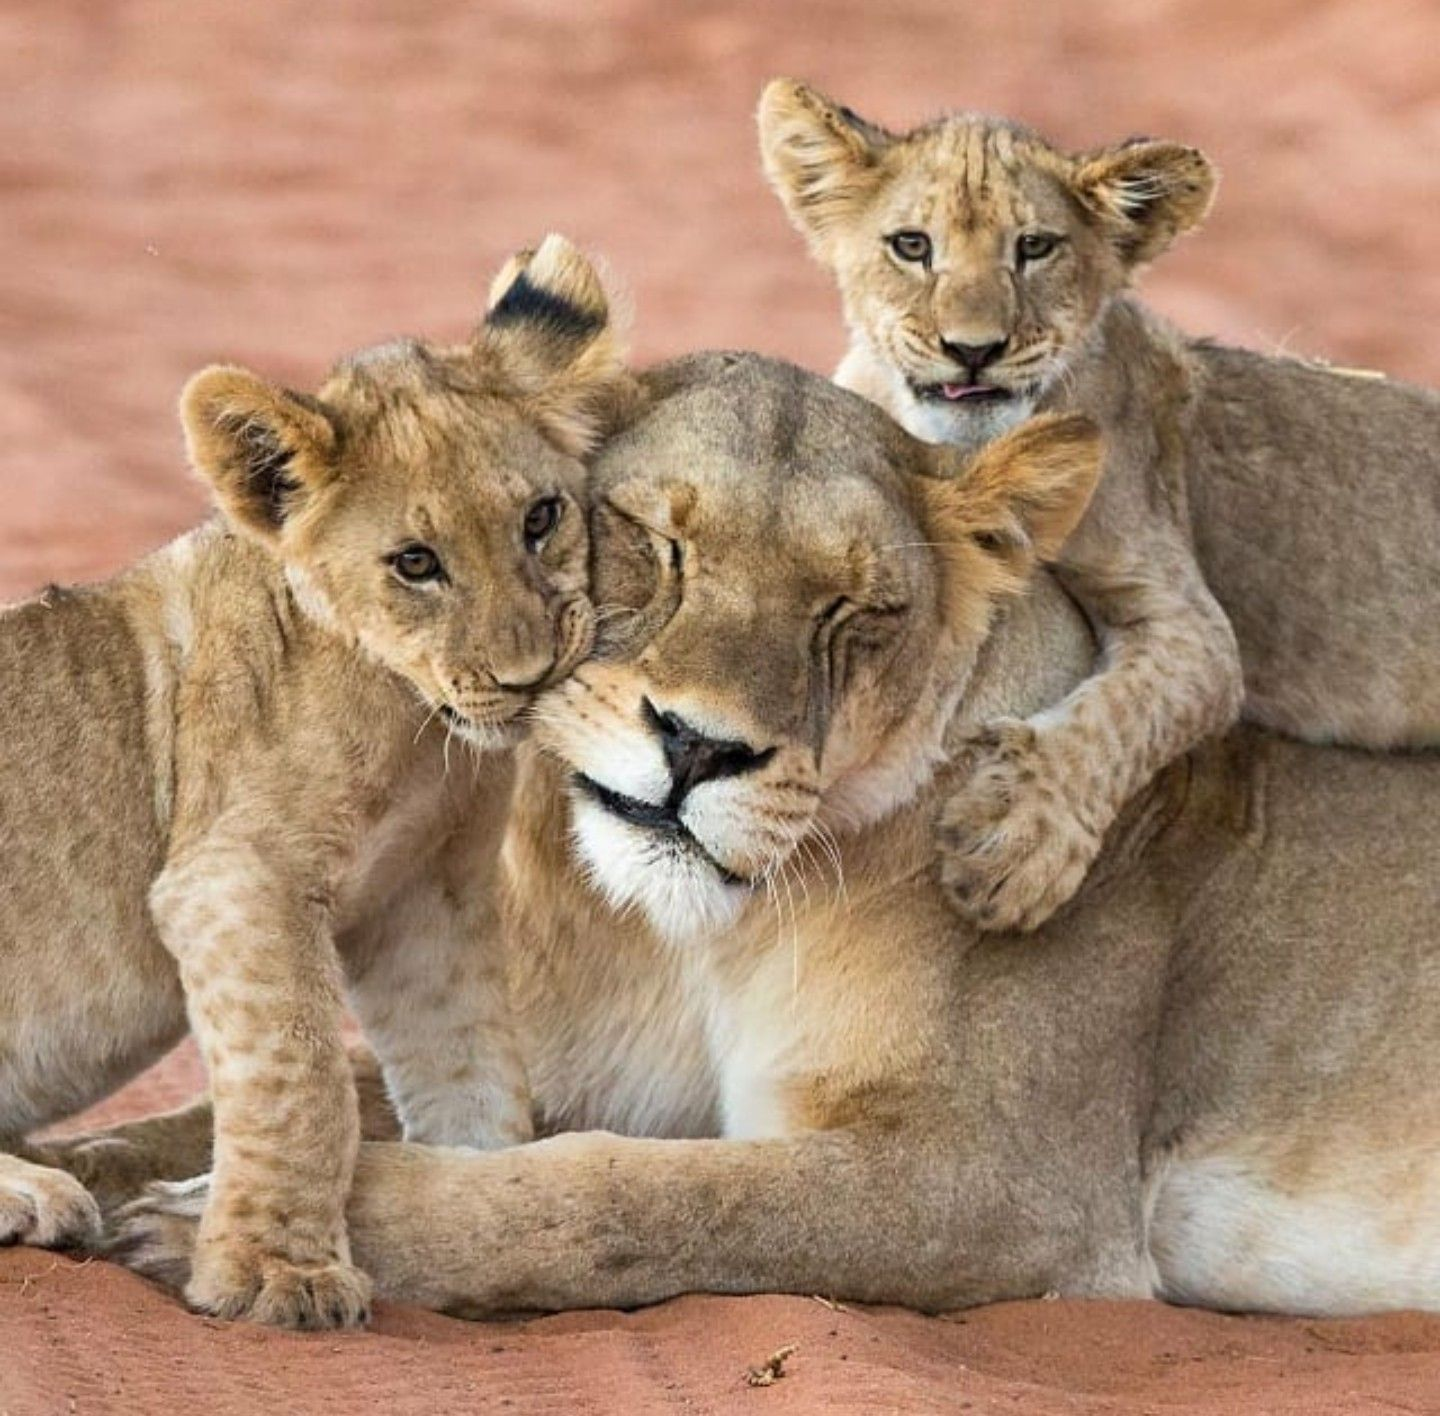 Cute Baby Lion Photo, Baby Animal Photograph, Wildlife